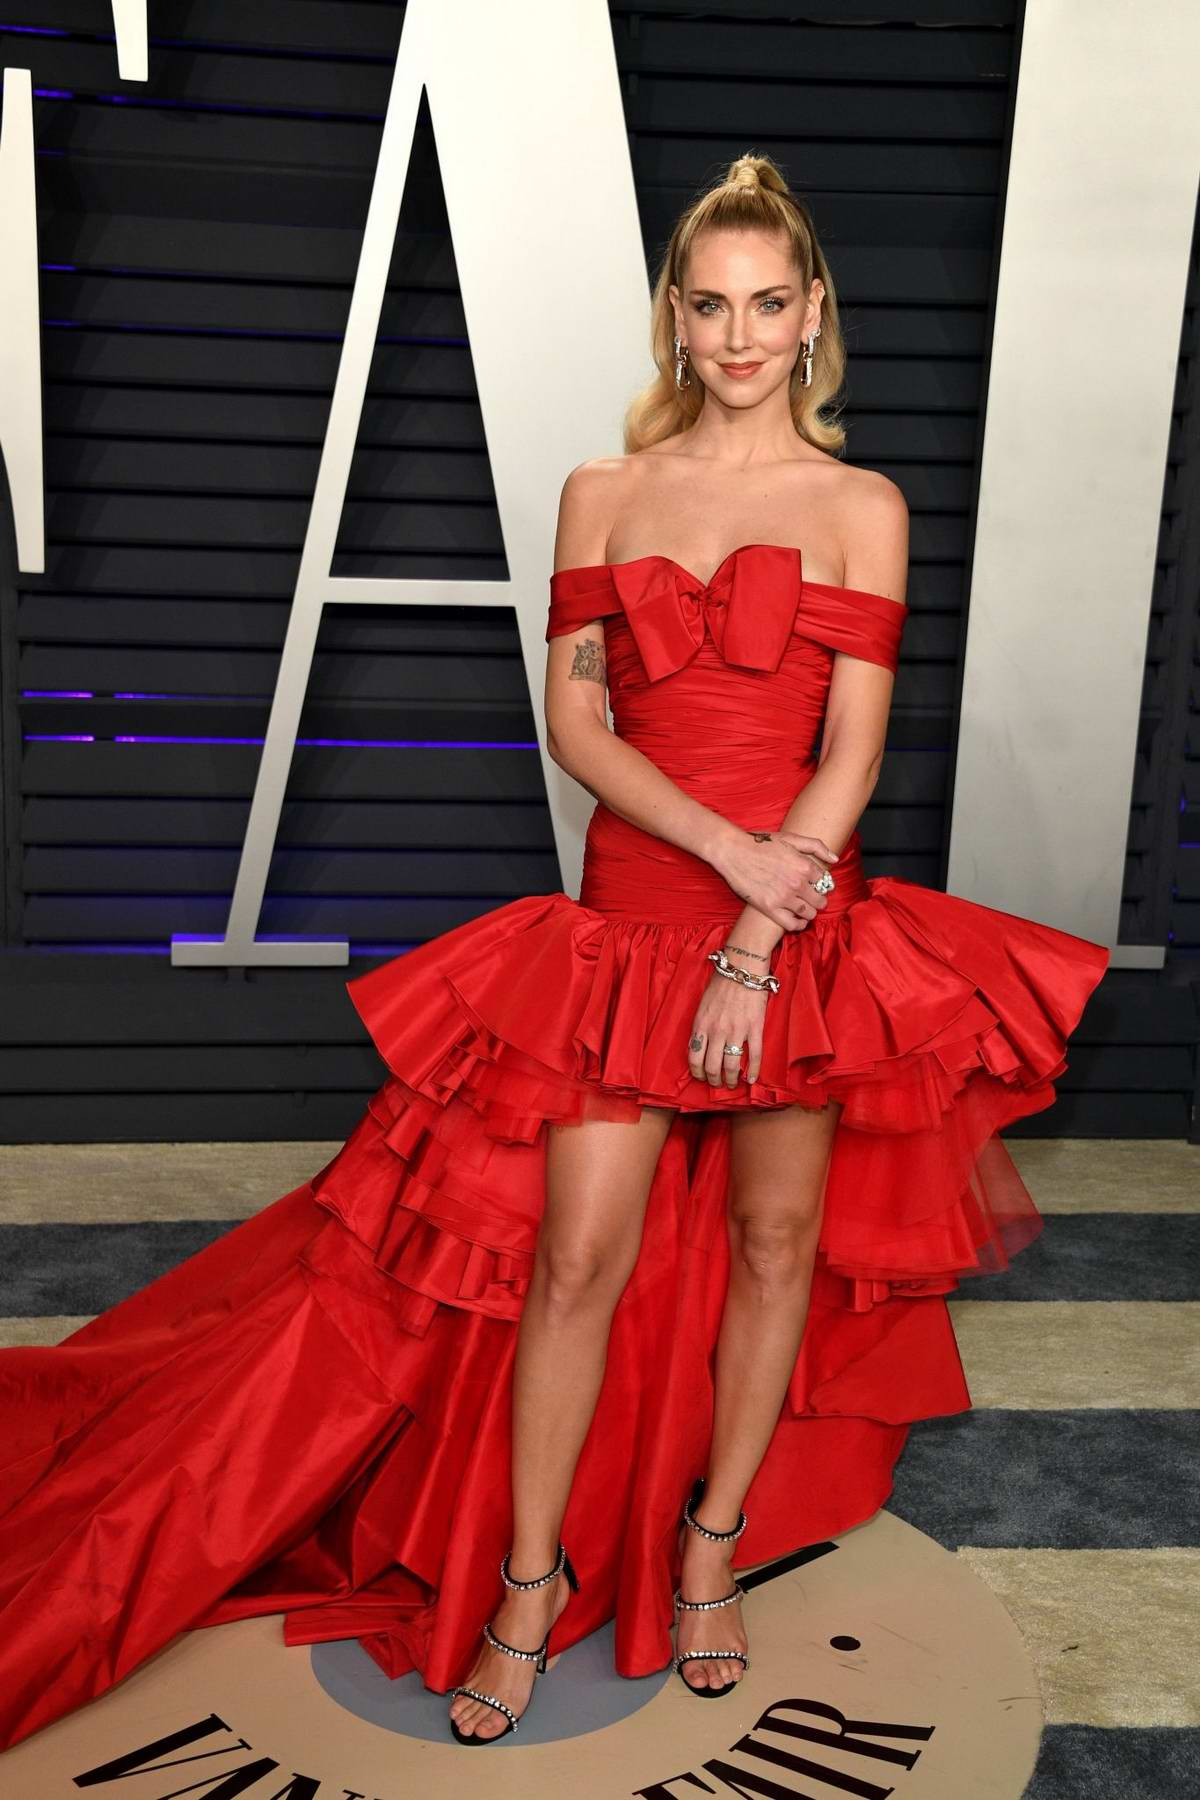 Chiara Ferragni attends the Vanity Fair Oscar Party at Wallis Annenberg Center for the Performing Arts in Beverly Hills, California